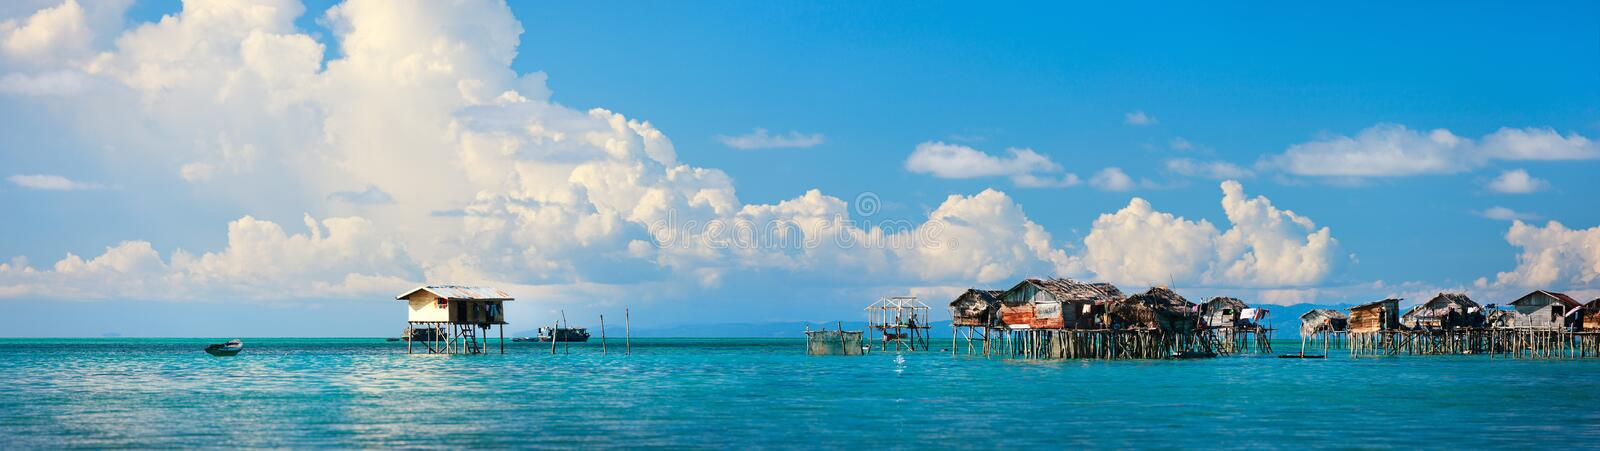 Download Sea gypsy village stock image. Image of tropical, residence - 24277391